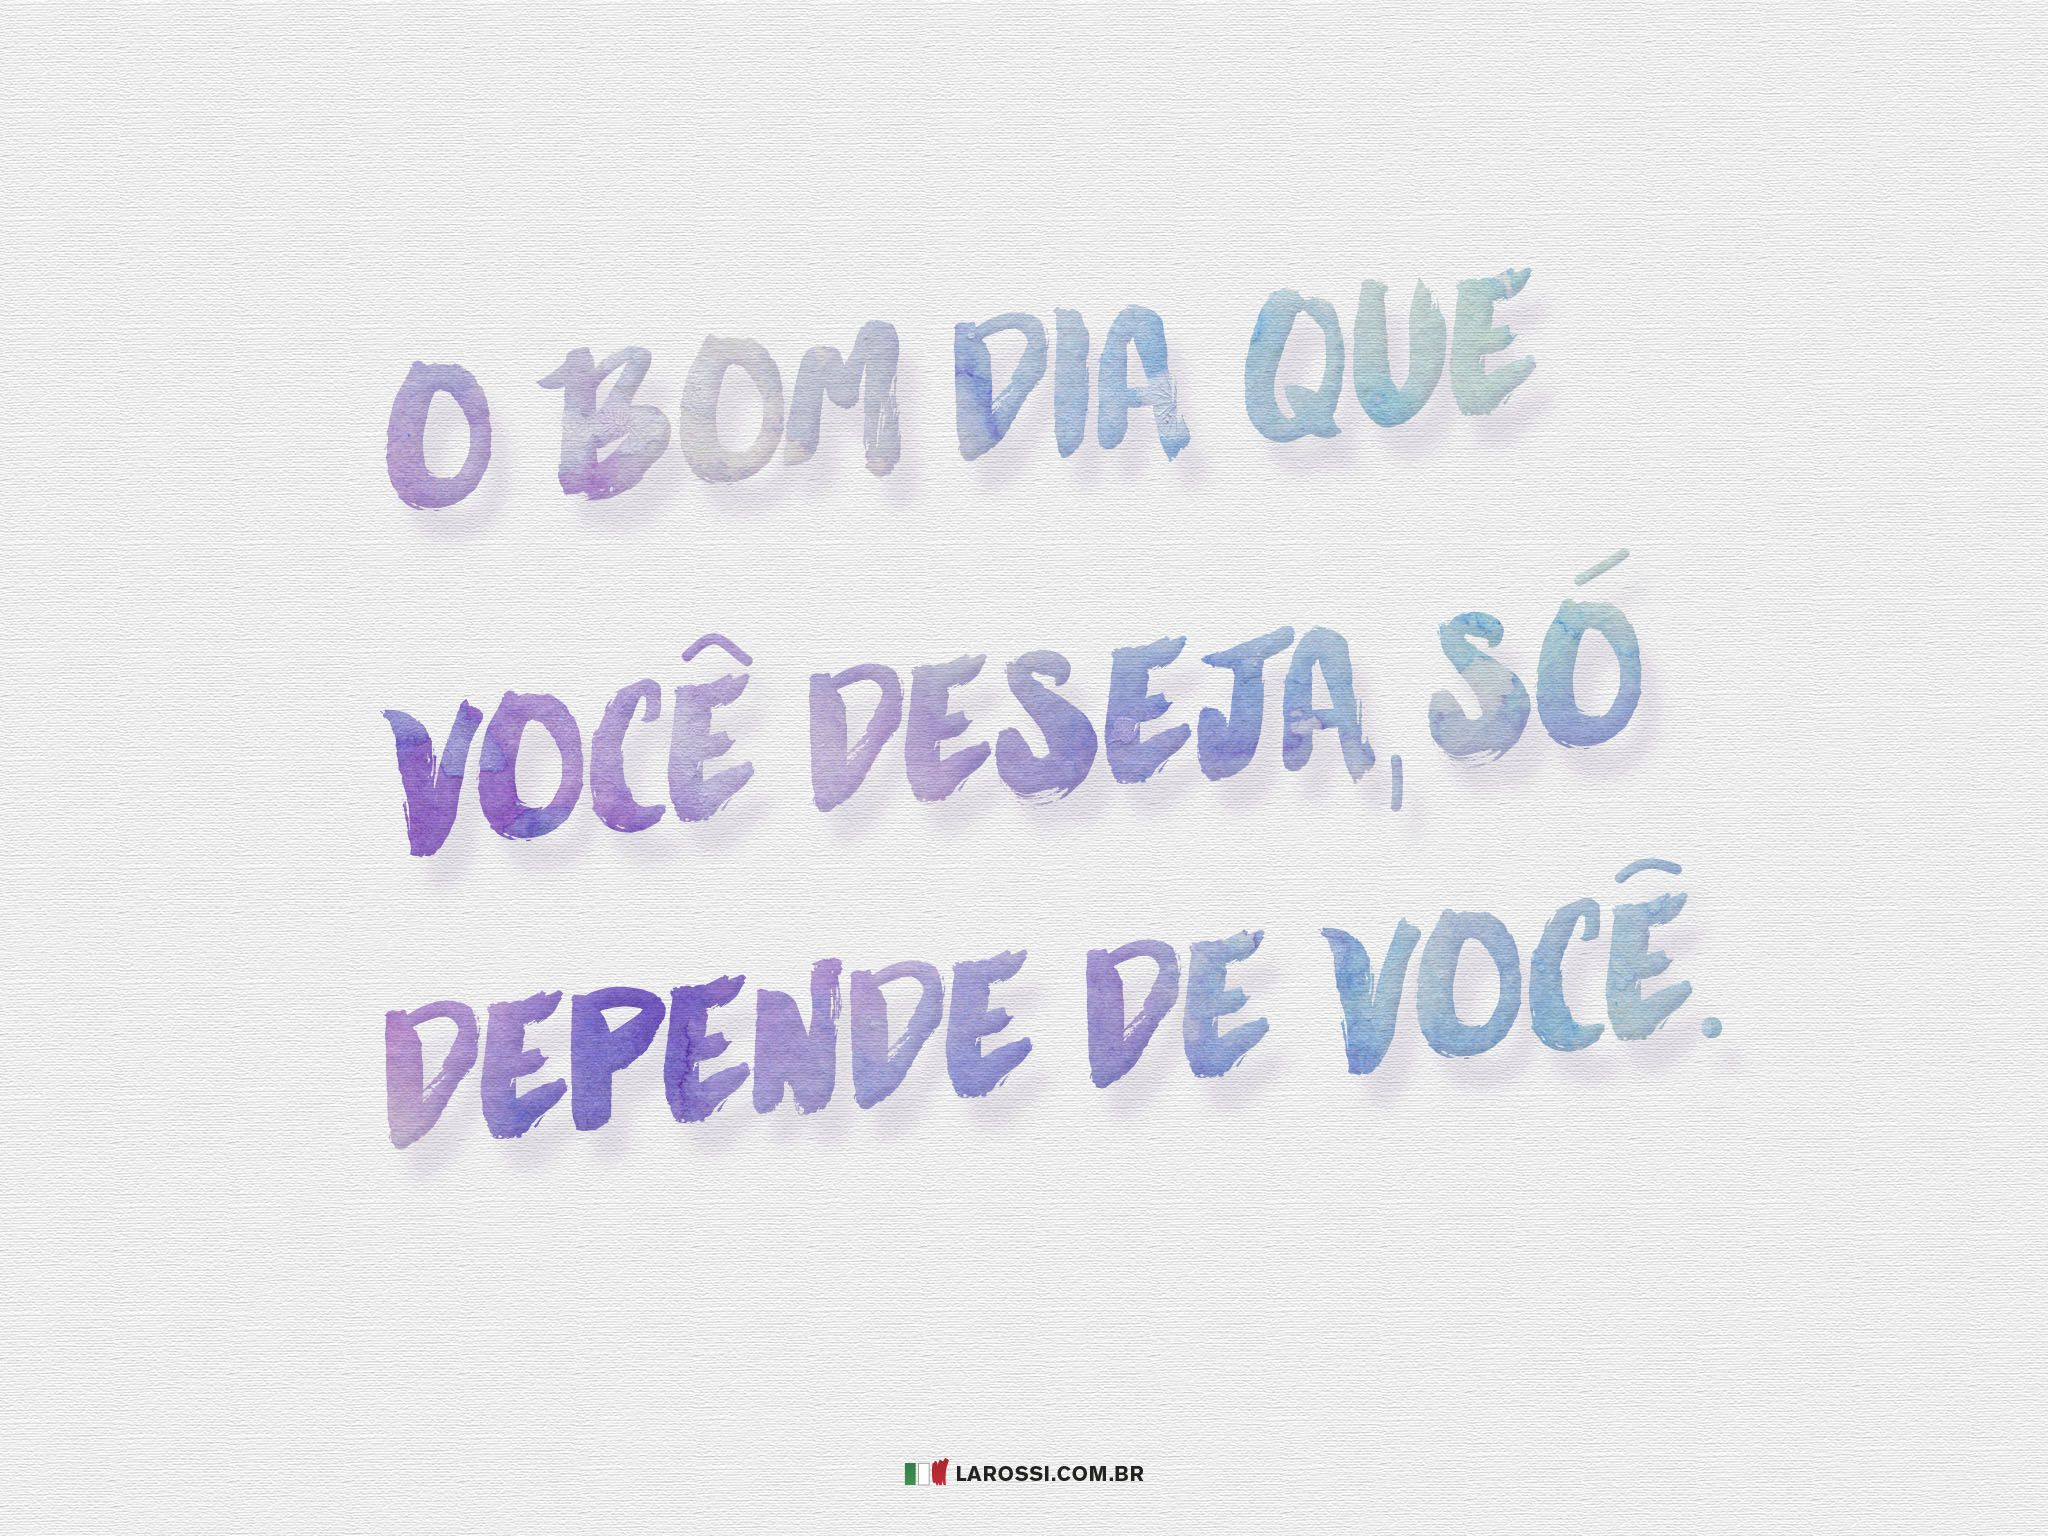 Dia Quote Amazing Bom Dia #quotes #phrases #inspiration #larossiquotes  Inspiration